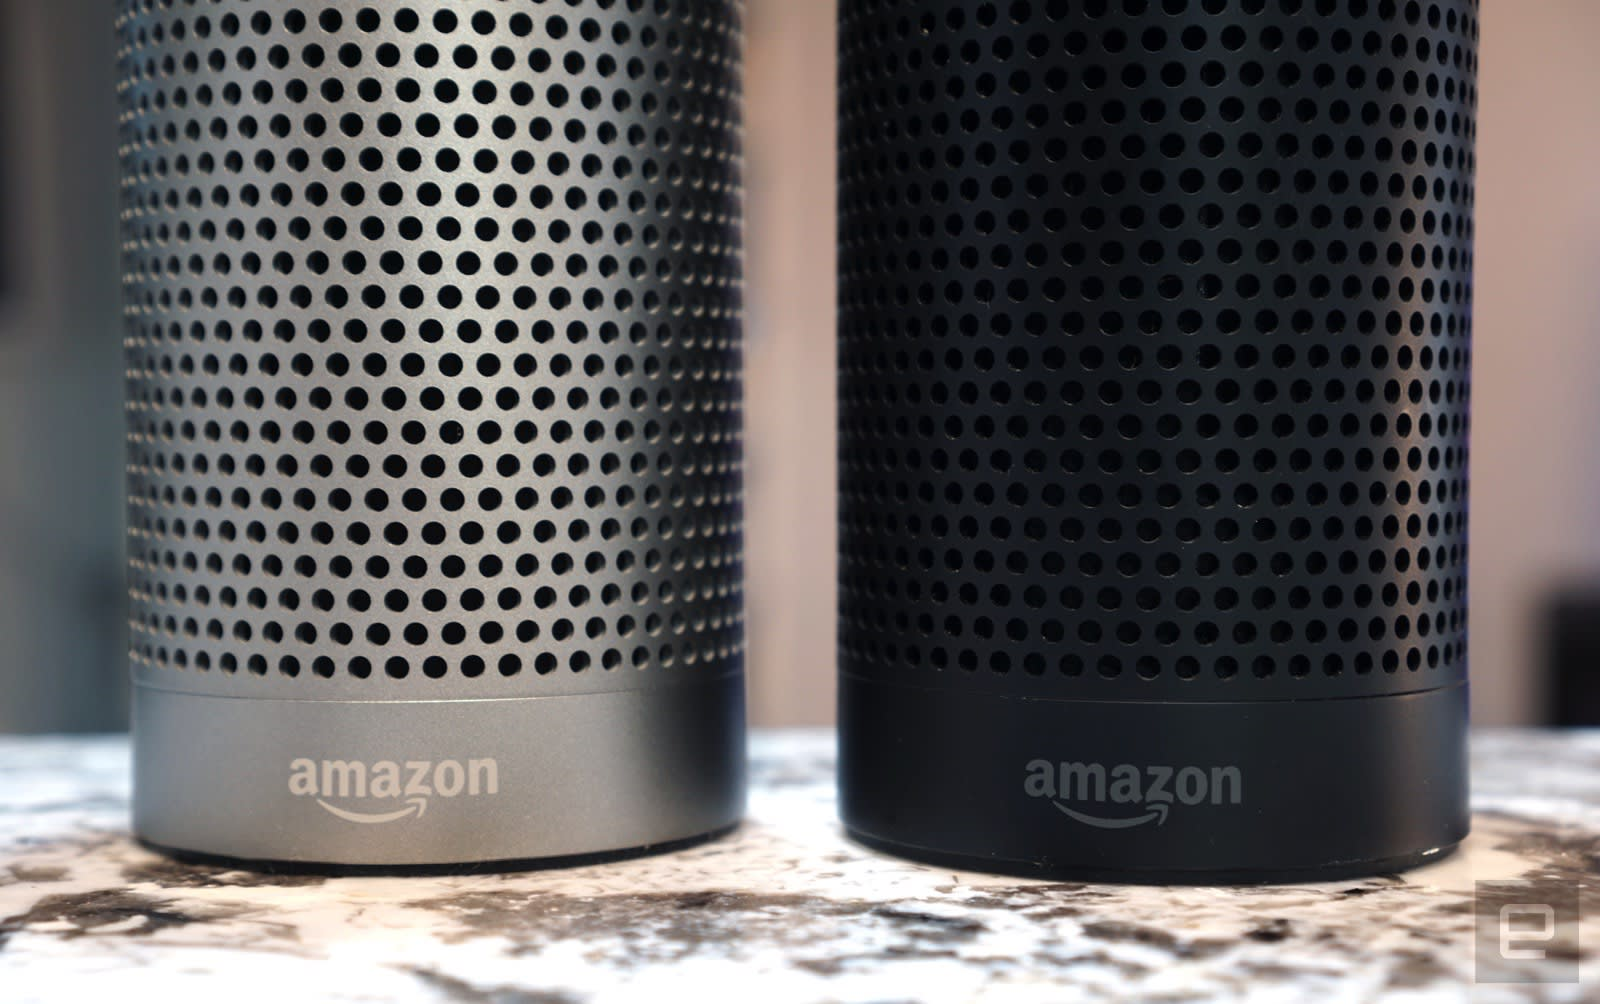 Amazon fixed an exploit that allowed Alexa to listen all the time